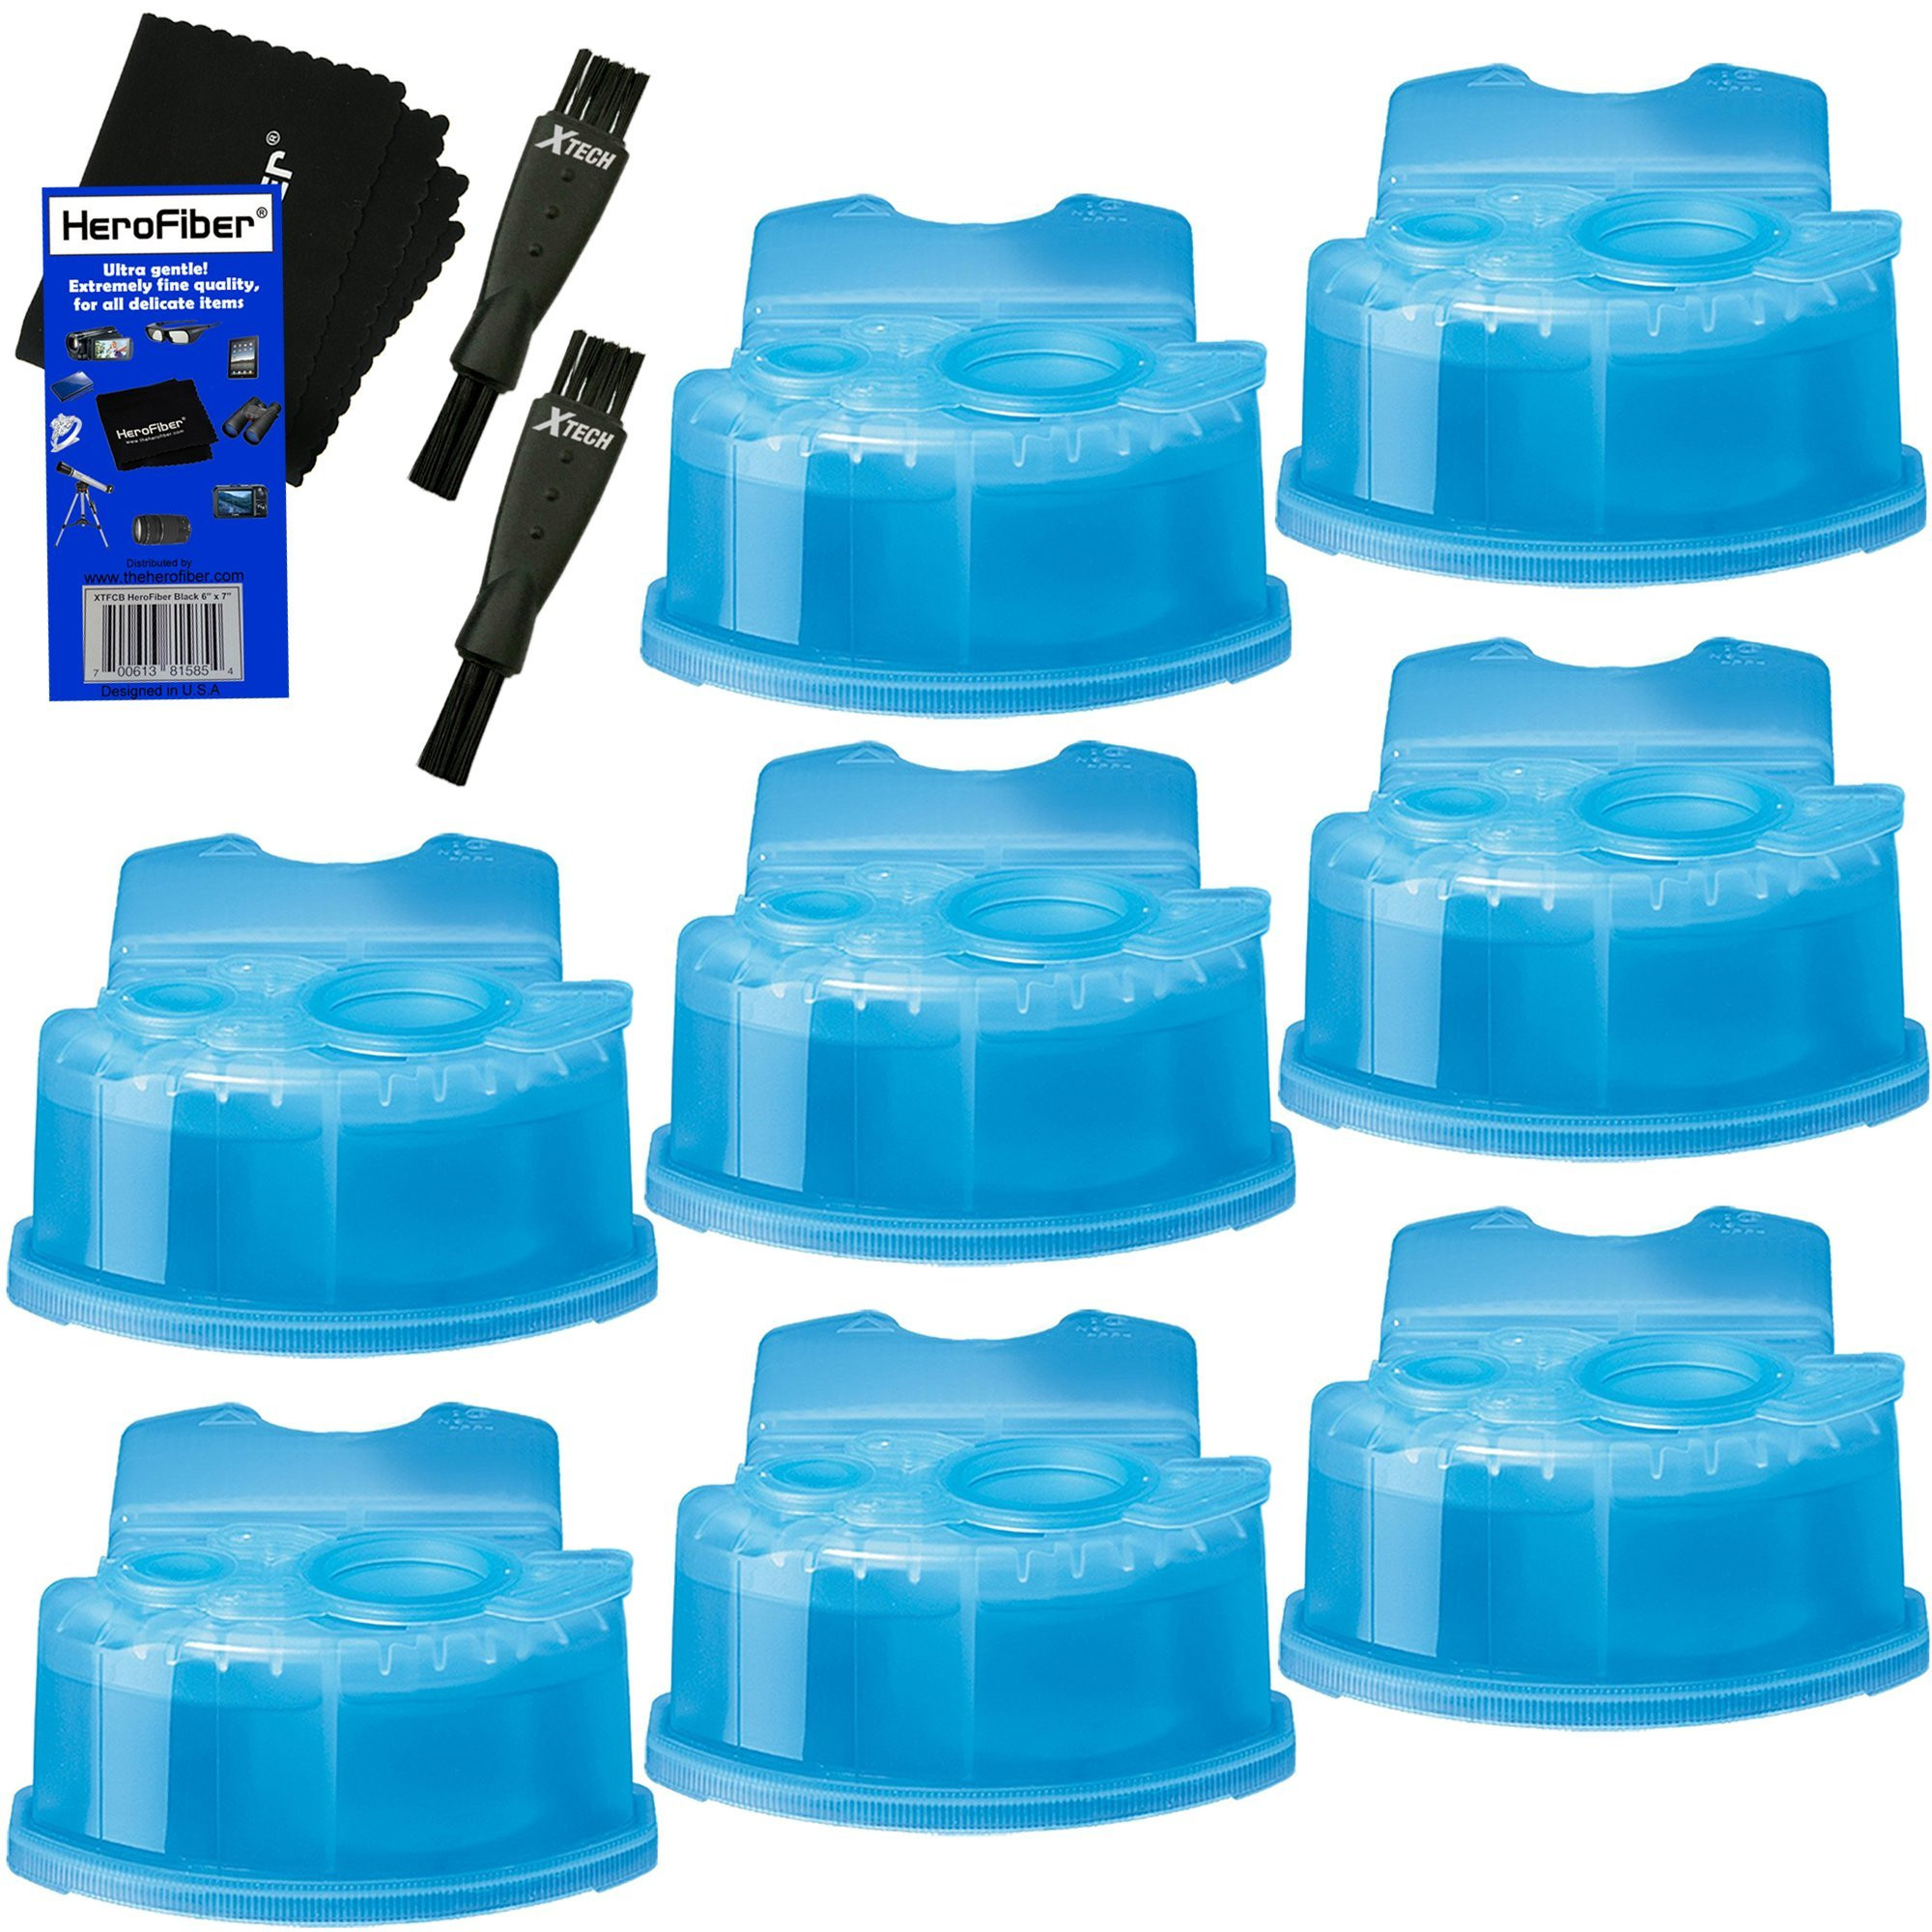 Braun Clean & Renew Refill Cartridges, Replacement Cleaner, Cleaning Solution (8 pack) for Series 3, Series 5, Series 7 & Series 9 + Double Ended Shaver Brush + HeroFiber Ultra Gentle Cleaning Cloth